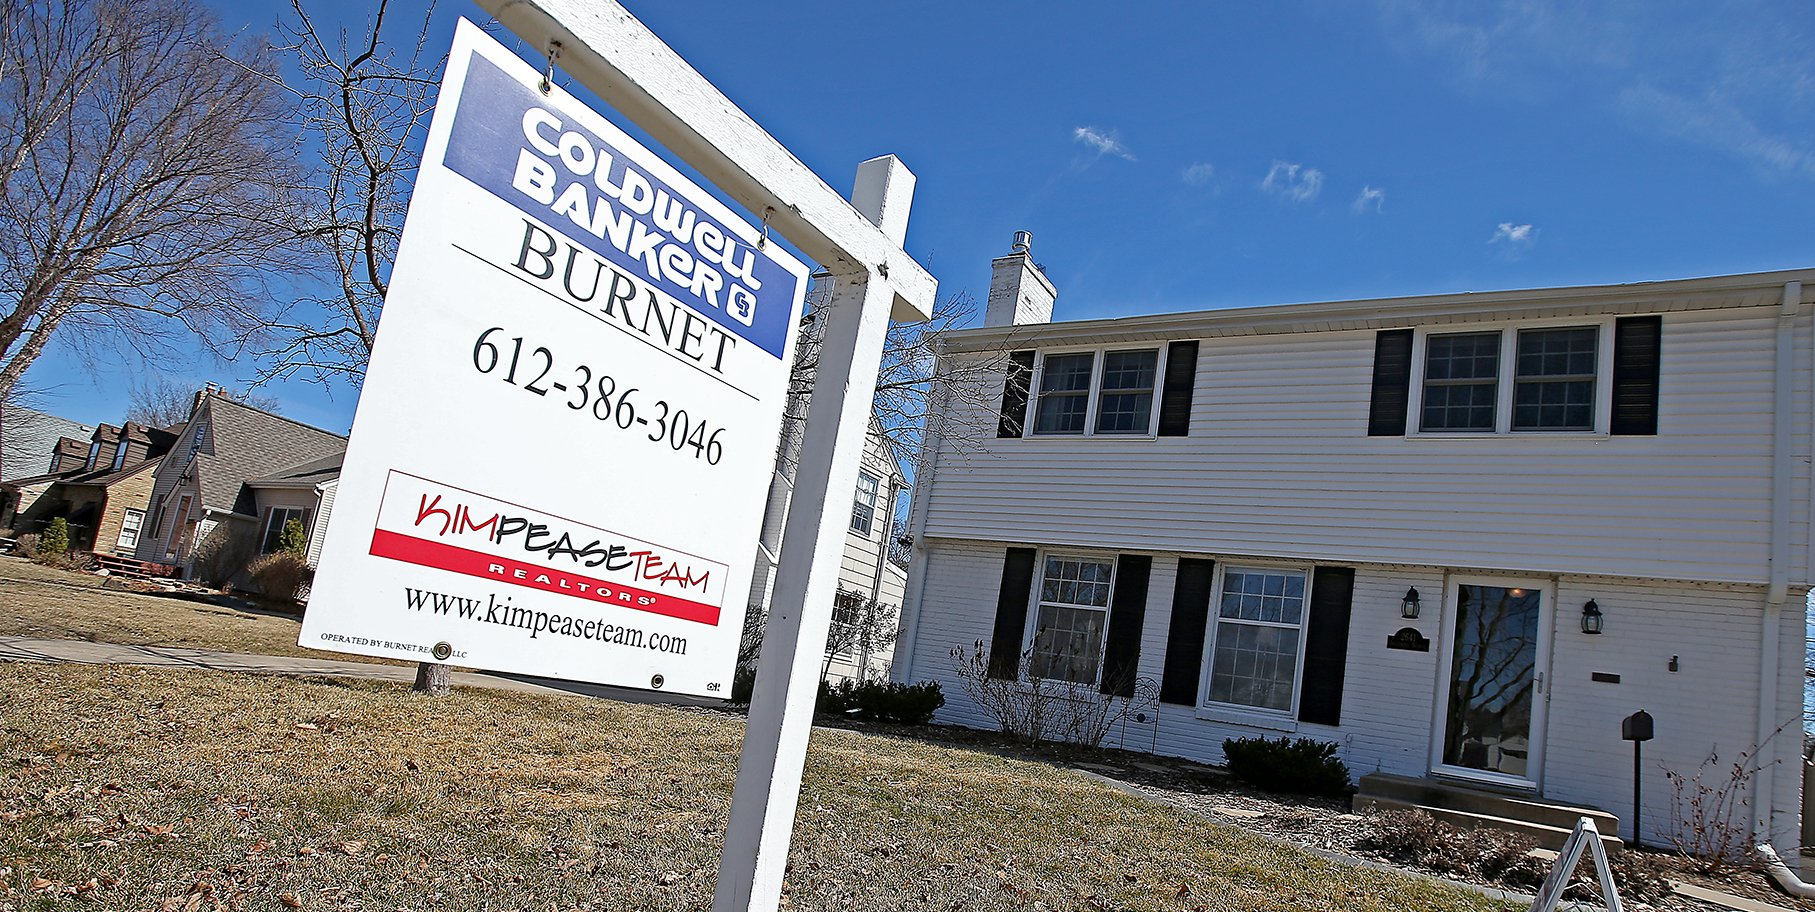 5-ways-to-sell-your-house-in-edison-nj-during-a-recession